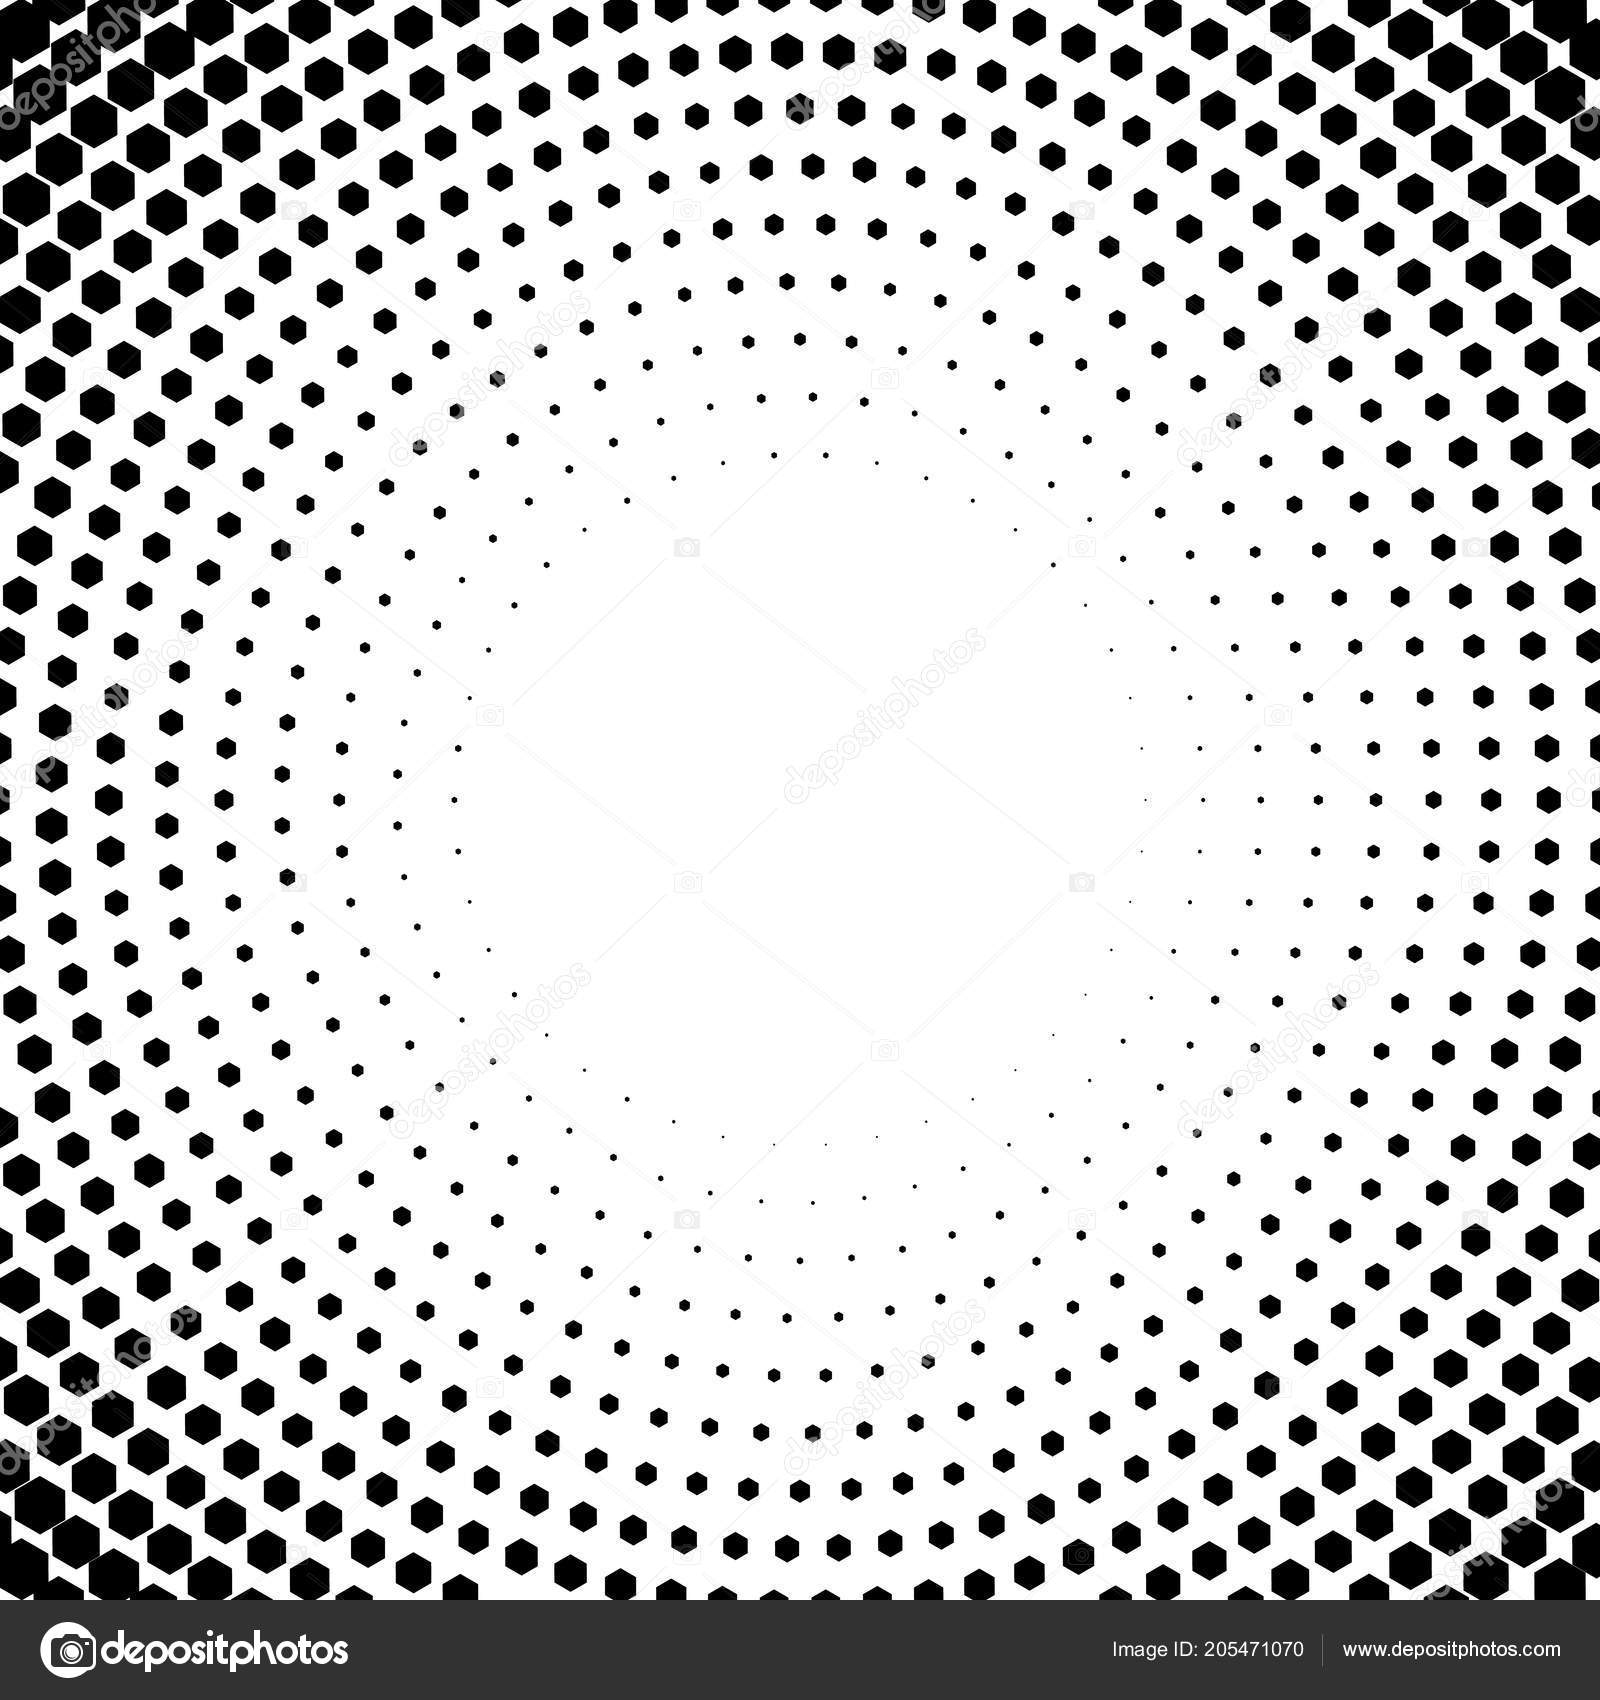 vector circl halftone geometric seamless pattern with cube shapes